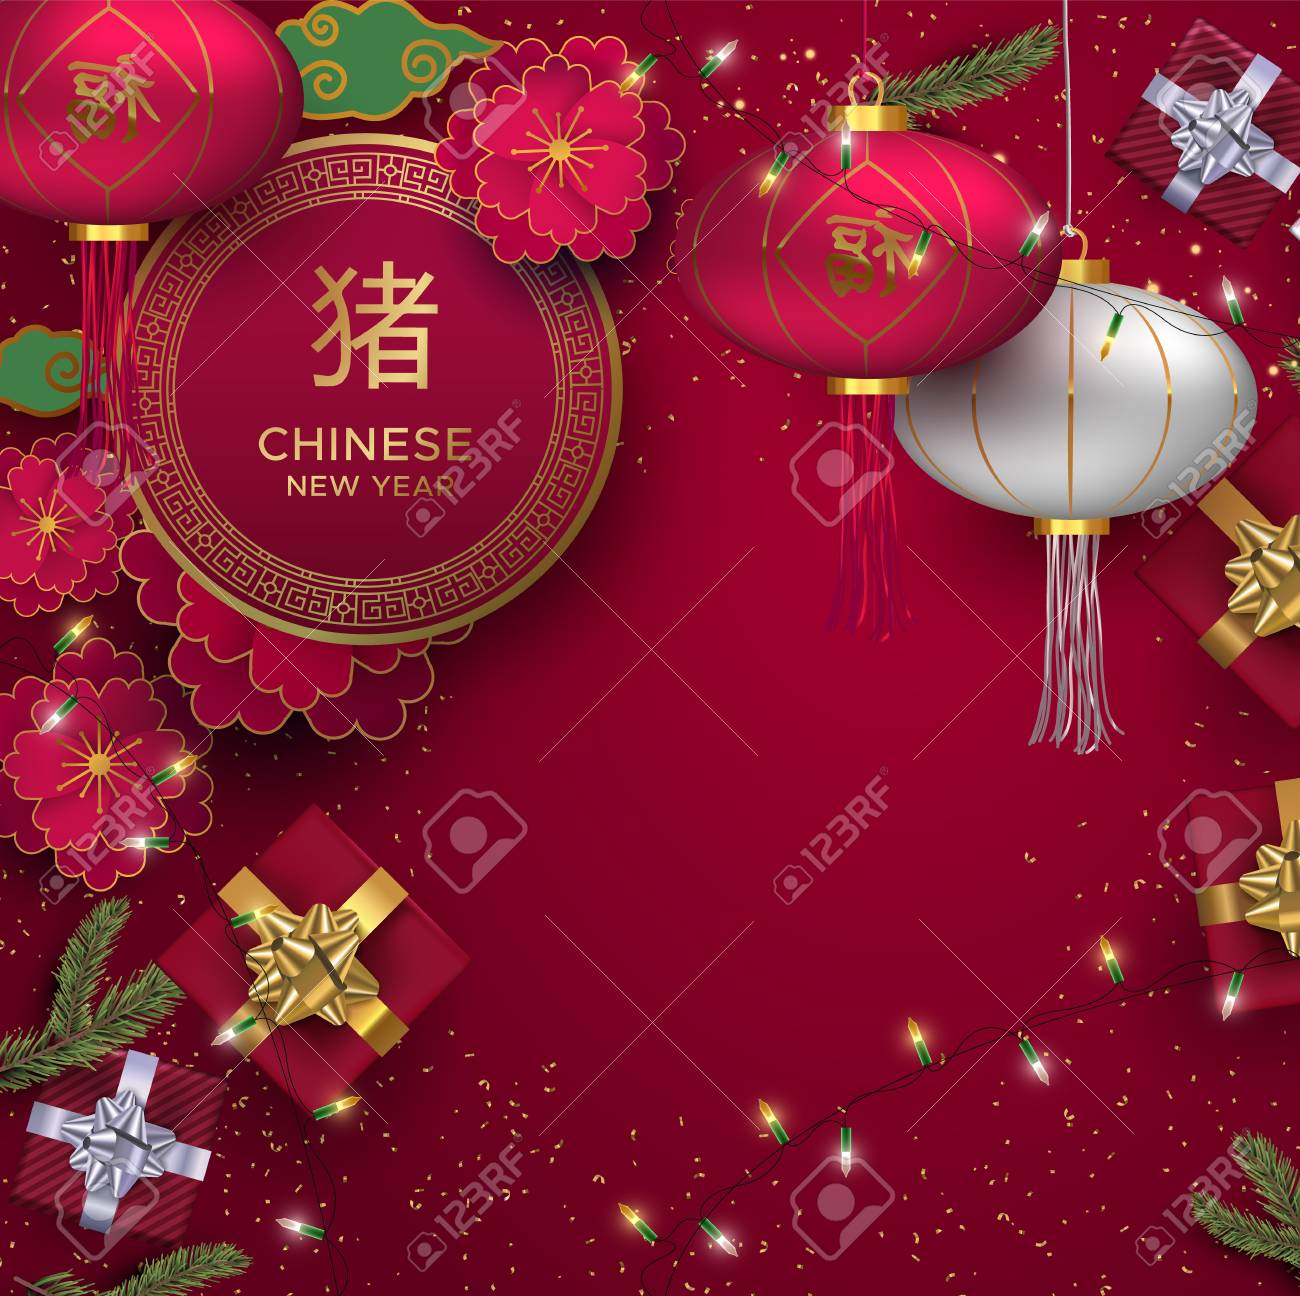 Chinese New Year Illustration Traditional 3d Holiday Celebration